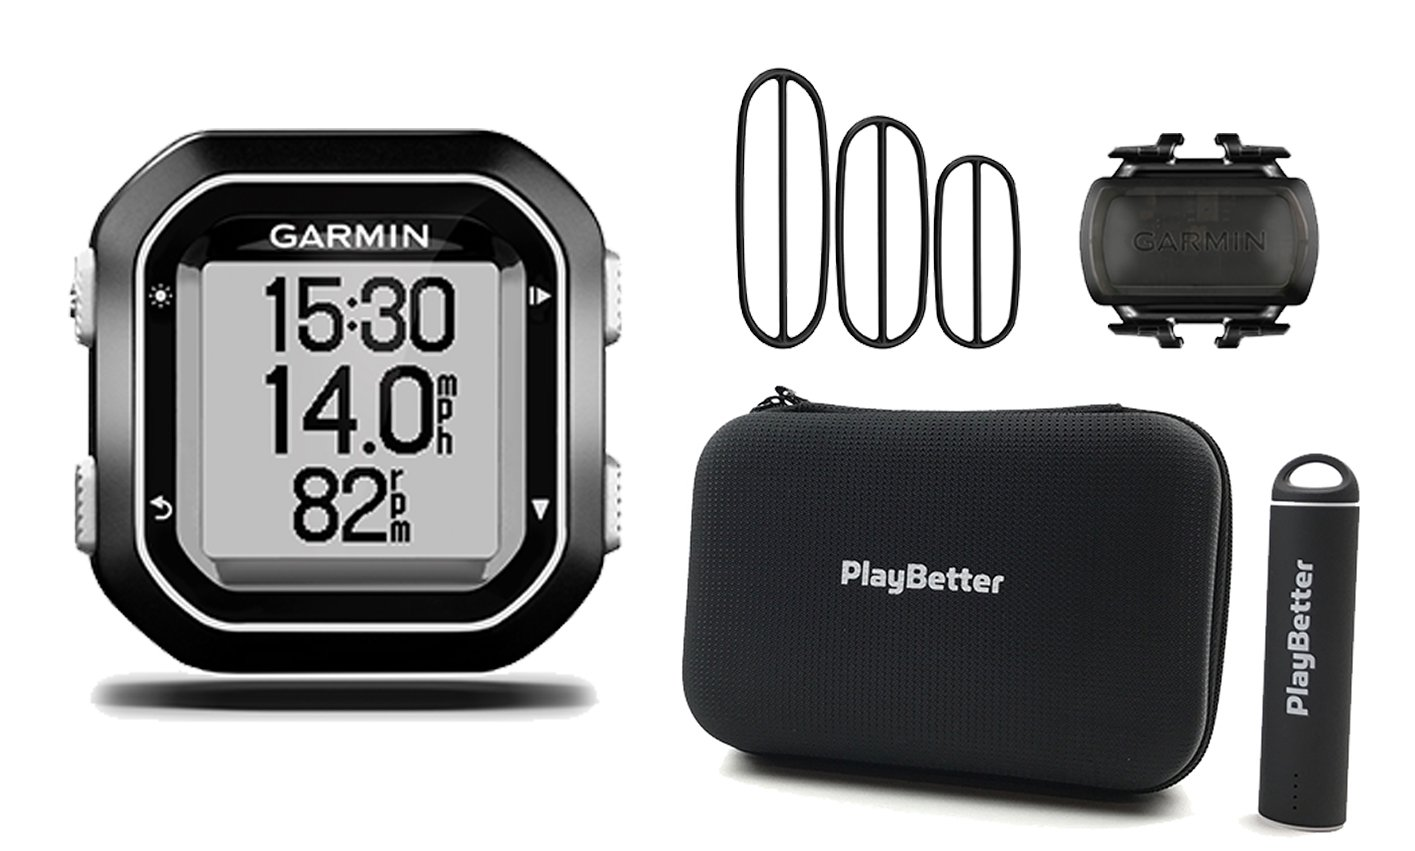 Garmin Edge 25 Cadence Bundle with Cadence Sensor, PlayBetter Portable USB Charger & Hard Carrying Case, Bike Mount, USB Cable | World's Smallest GPS Cycling Computer